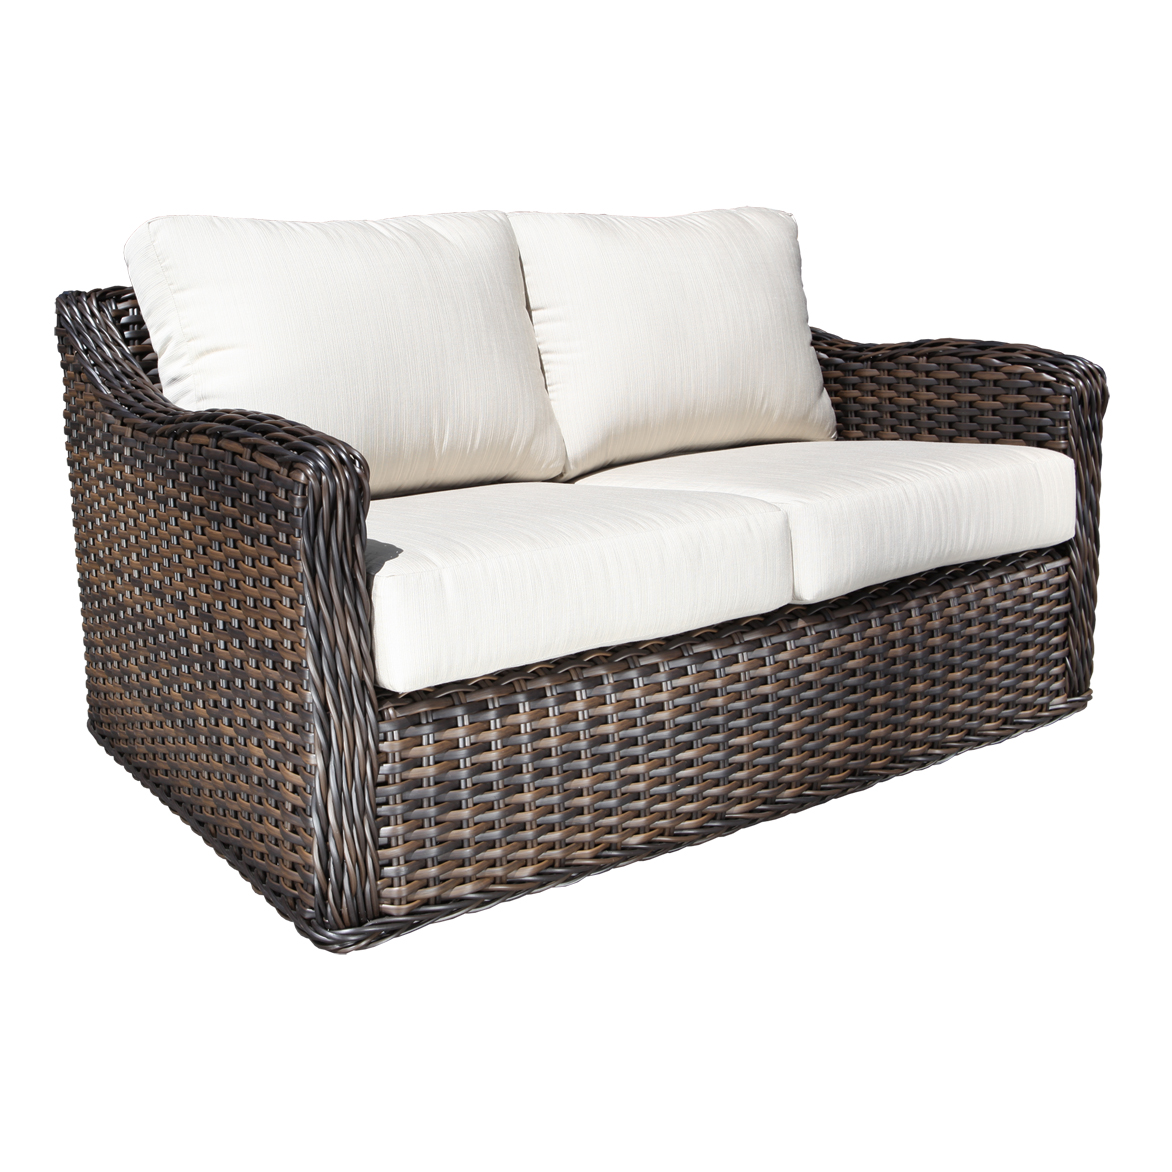 Cool resin wicker patio furniture for all weather hgnv com for Outdoor furniture wicker